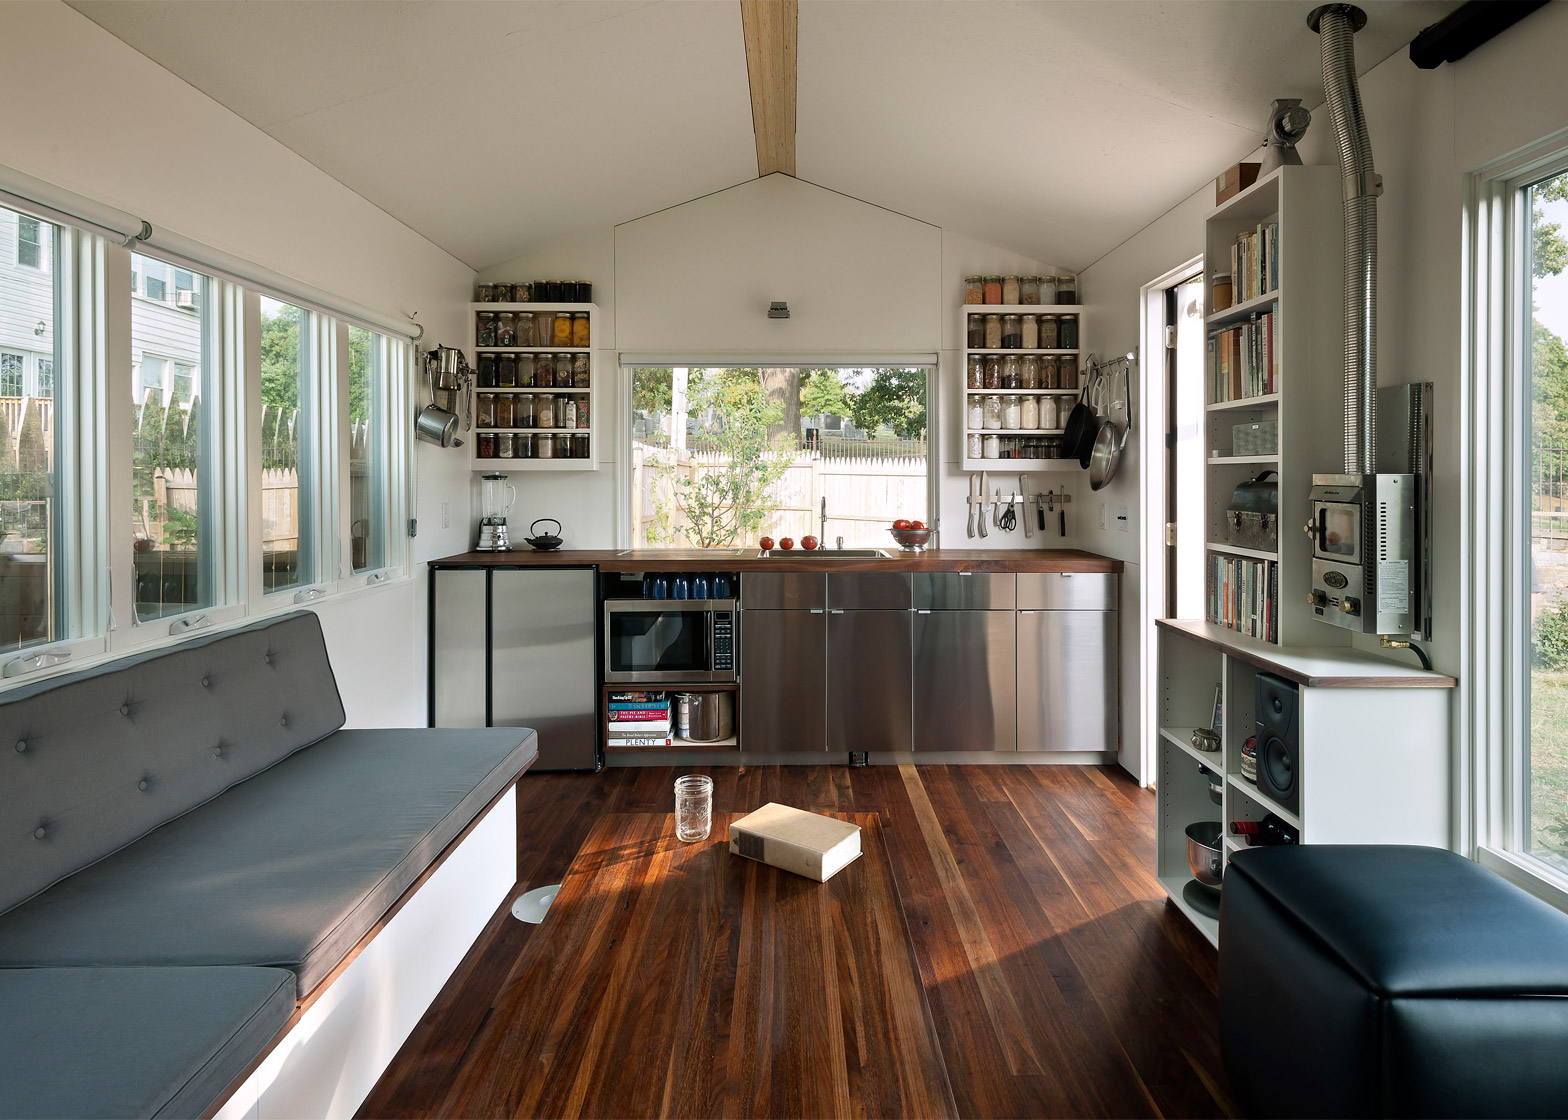 How you should decorate a home, by Foundry Architects